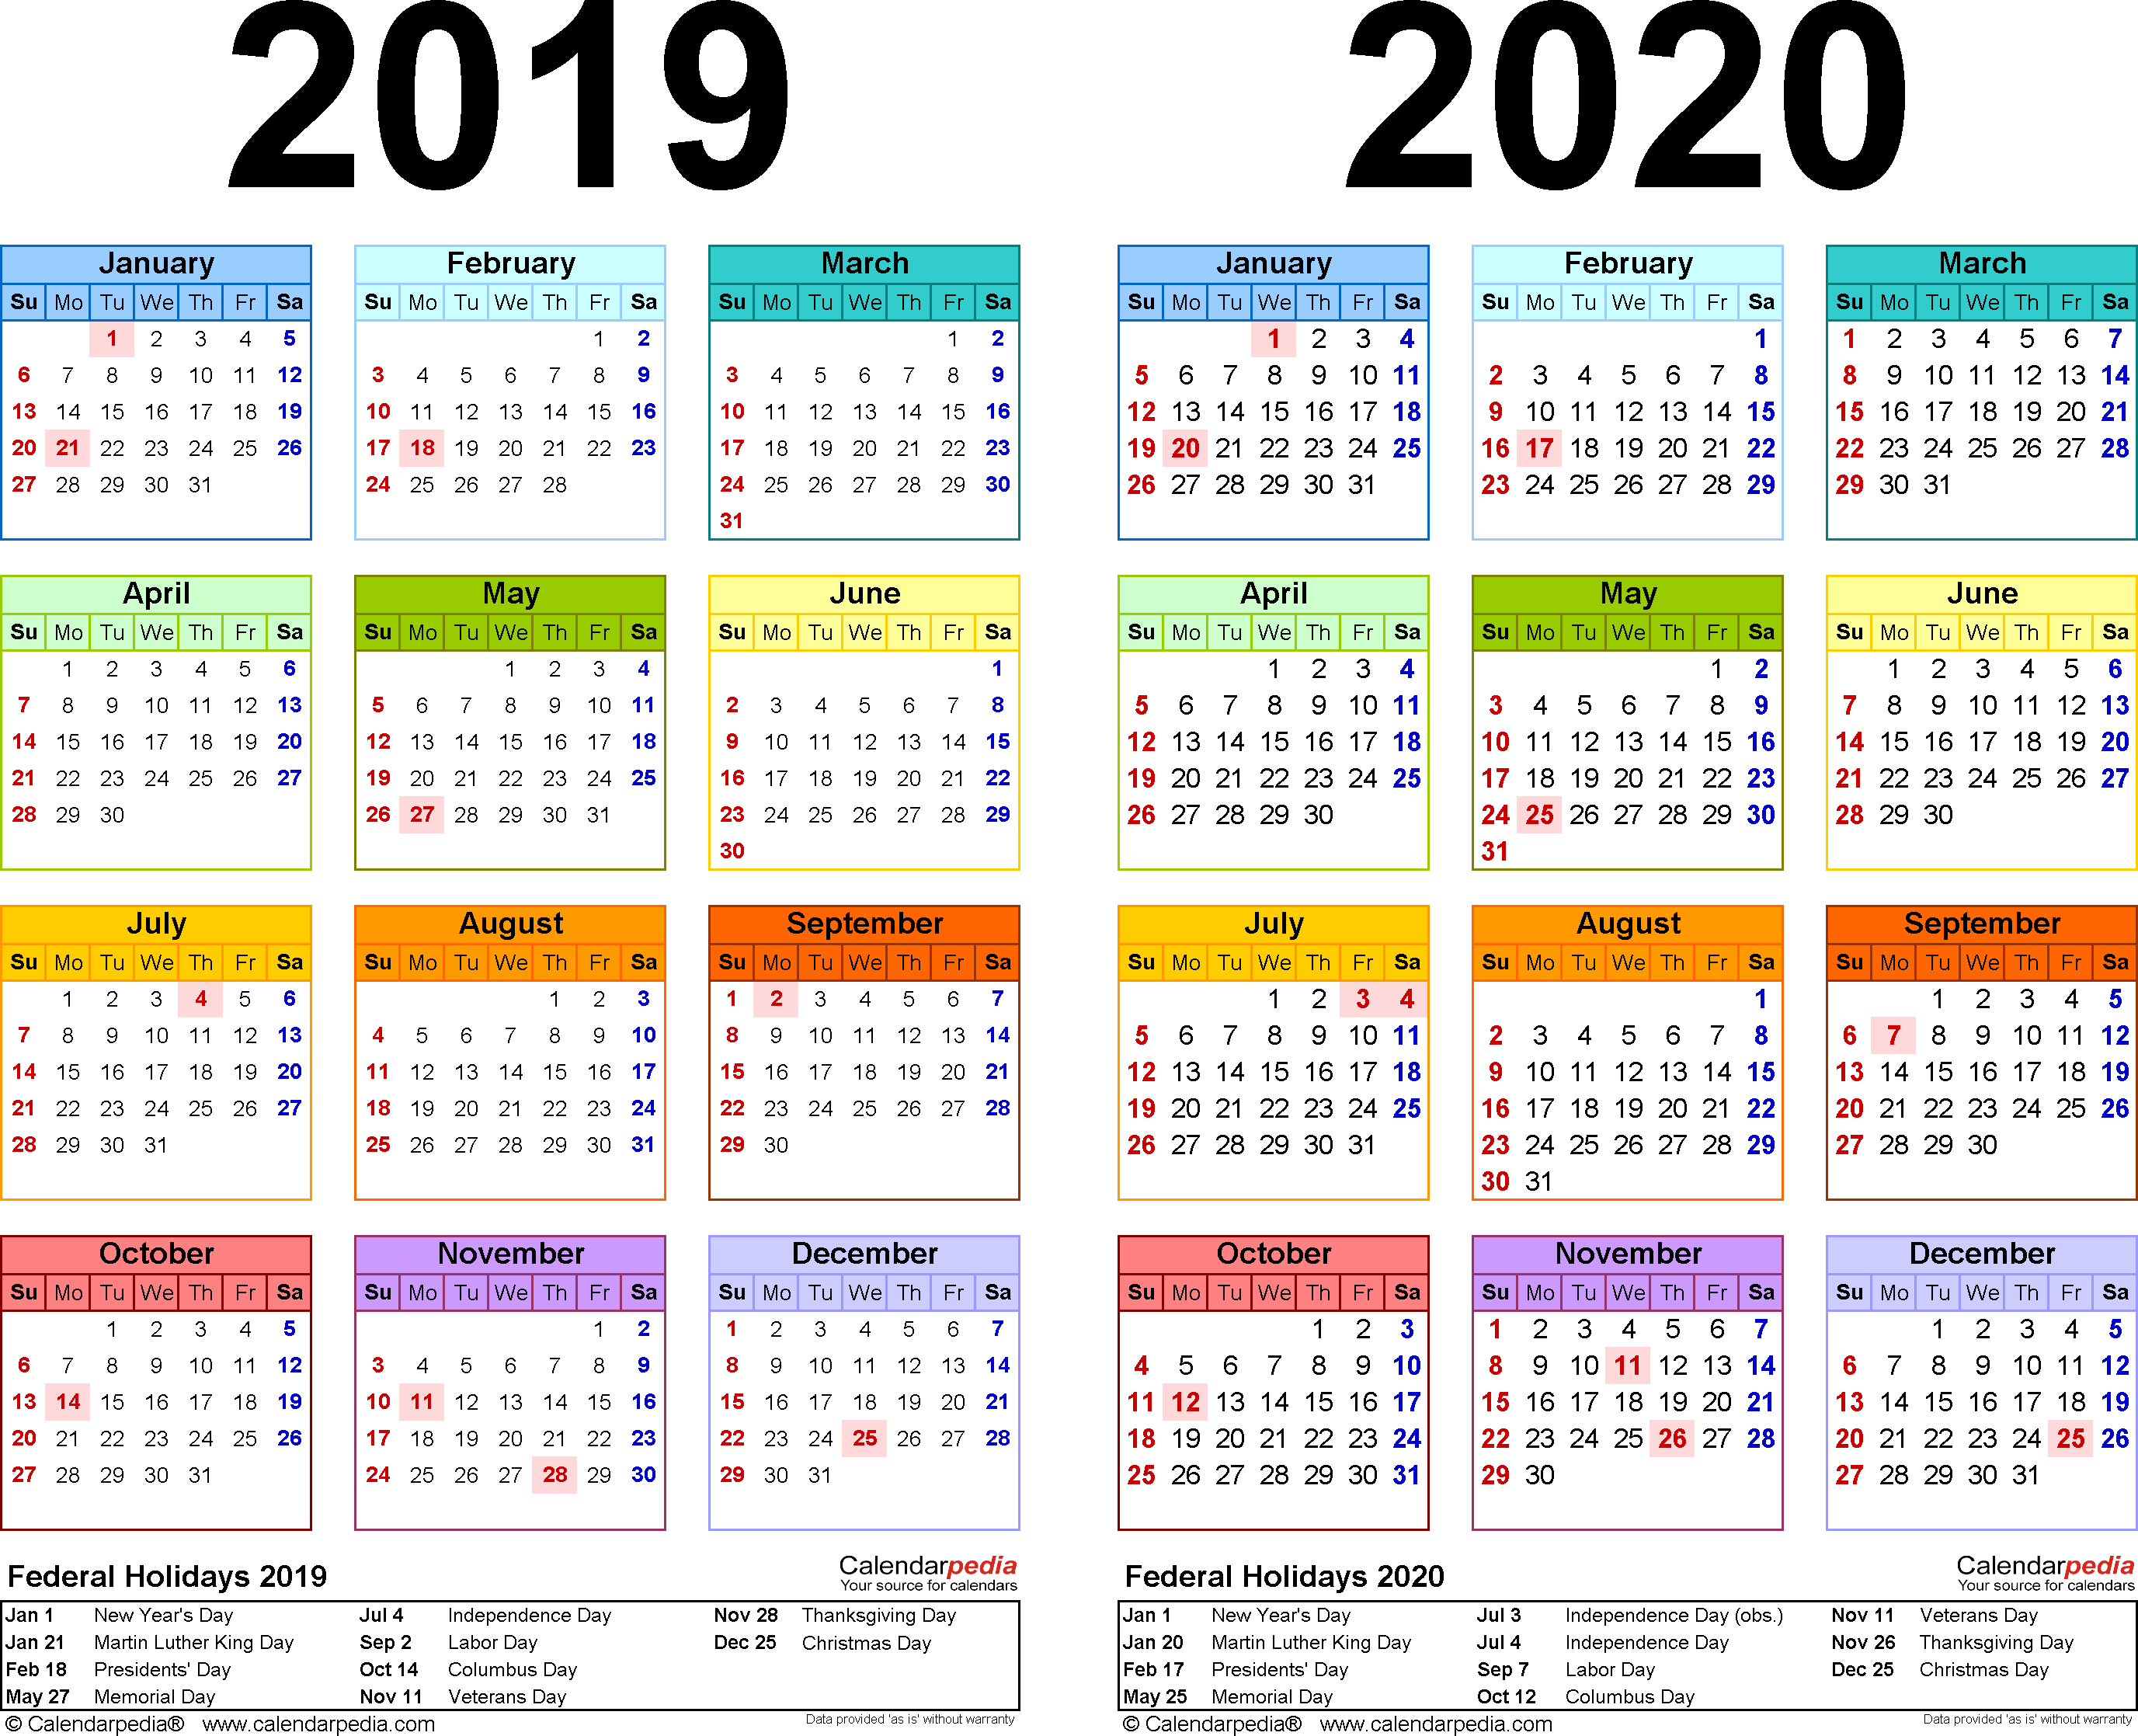 2019-2020 Calendar - Free Printable Two-Year Pdf Calendars regarding Printable Calendar 2019-2020 Year At A Glance